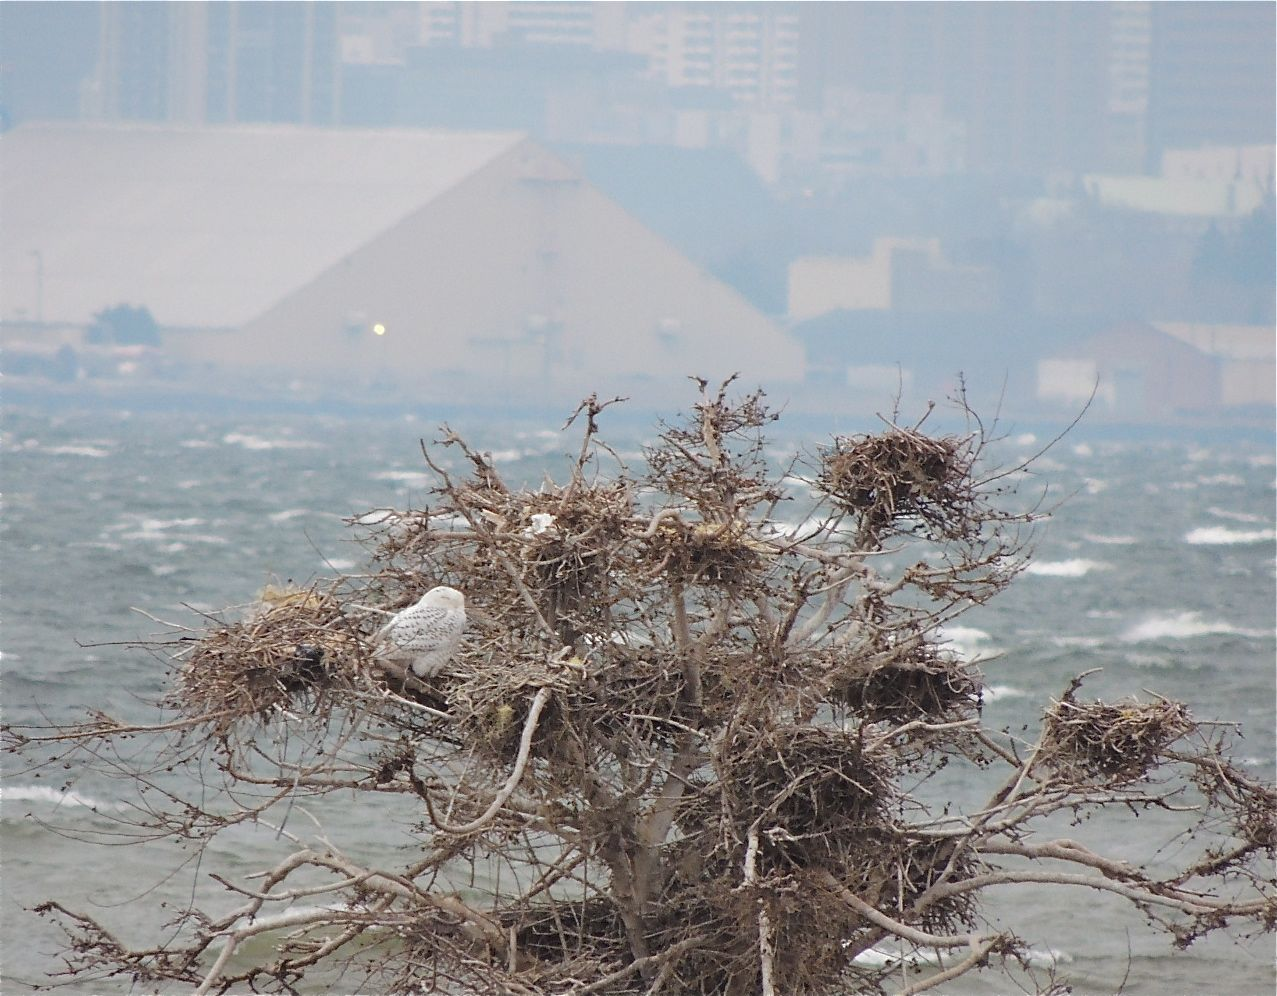 Probably a male Snowy Owl taking shelter among tangles of old cormorant nests